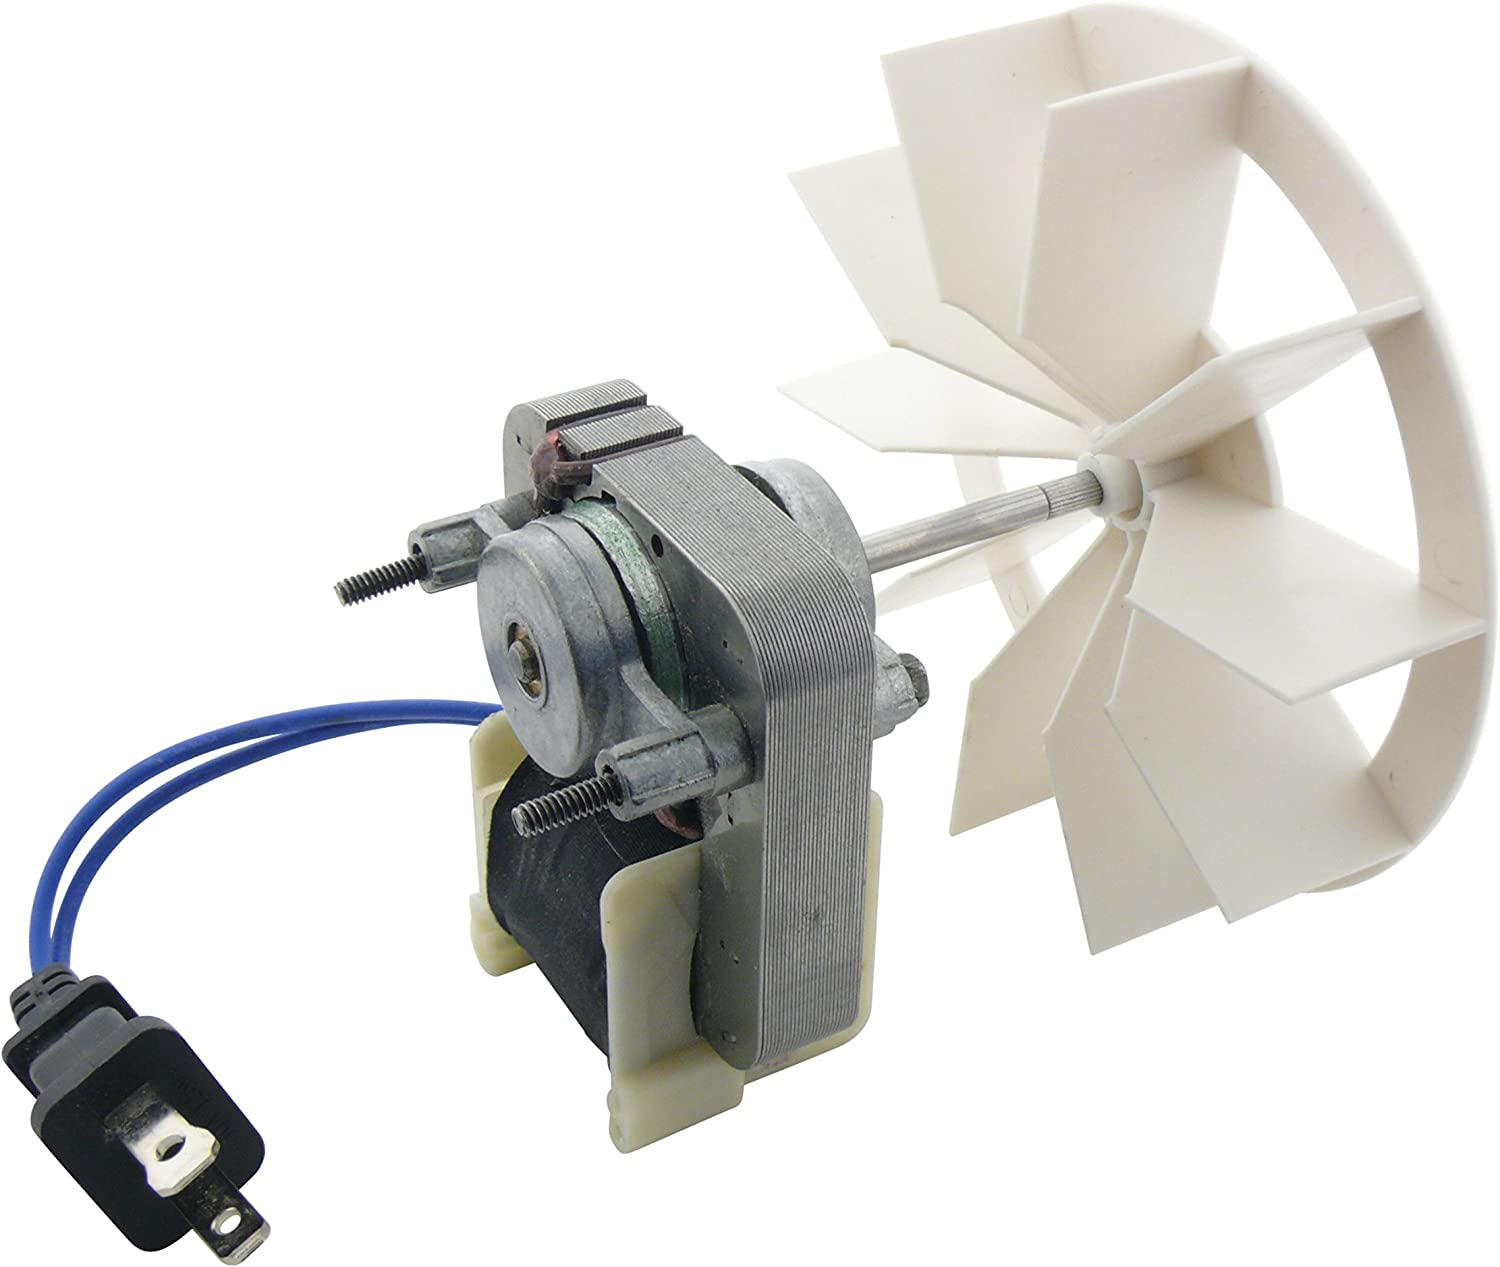 Nutone Broan Replacement Vent Fan Motor and blower wheel # 97012041, 50 CFM.9 amps; 120 Volts, 9 Amp/120V